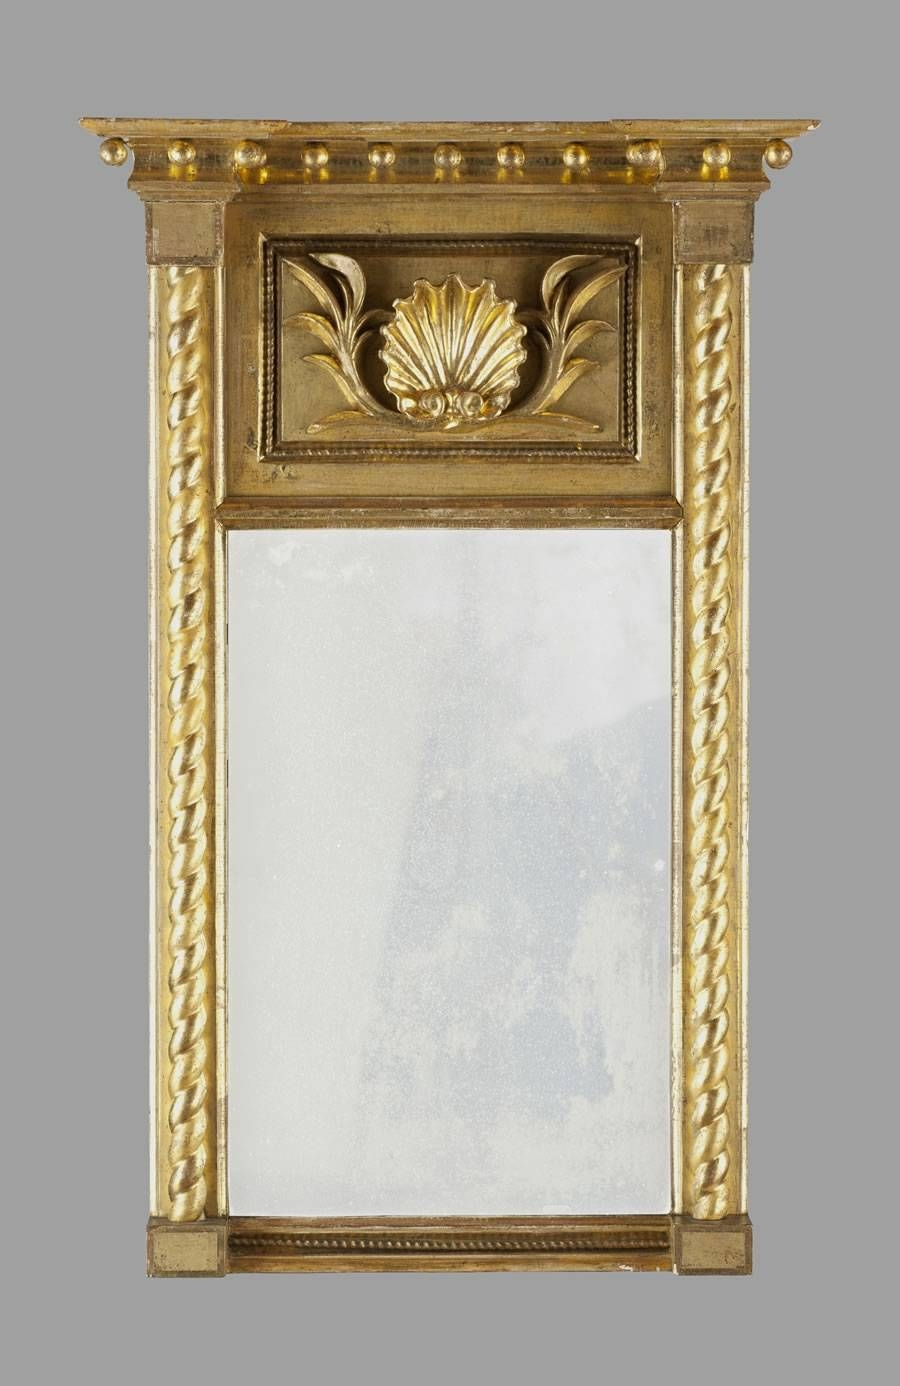 Federal Gold-Gilt Mirror With Shell Motif And Original Label regarding Gold Gilt Mirrors (Image 5 of 15)